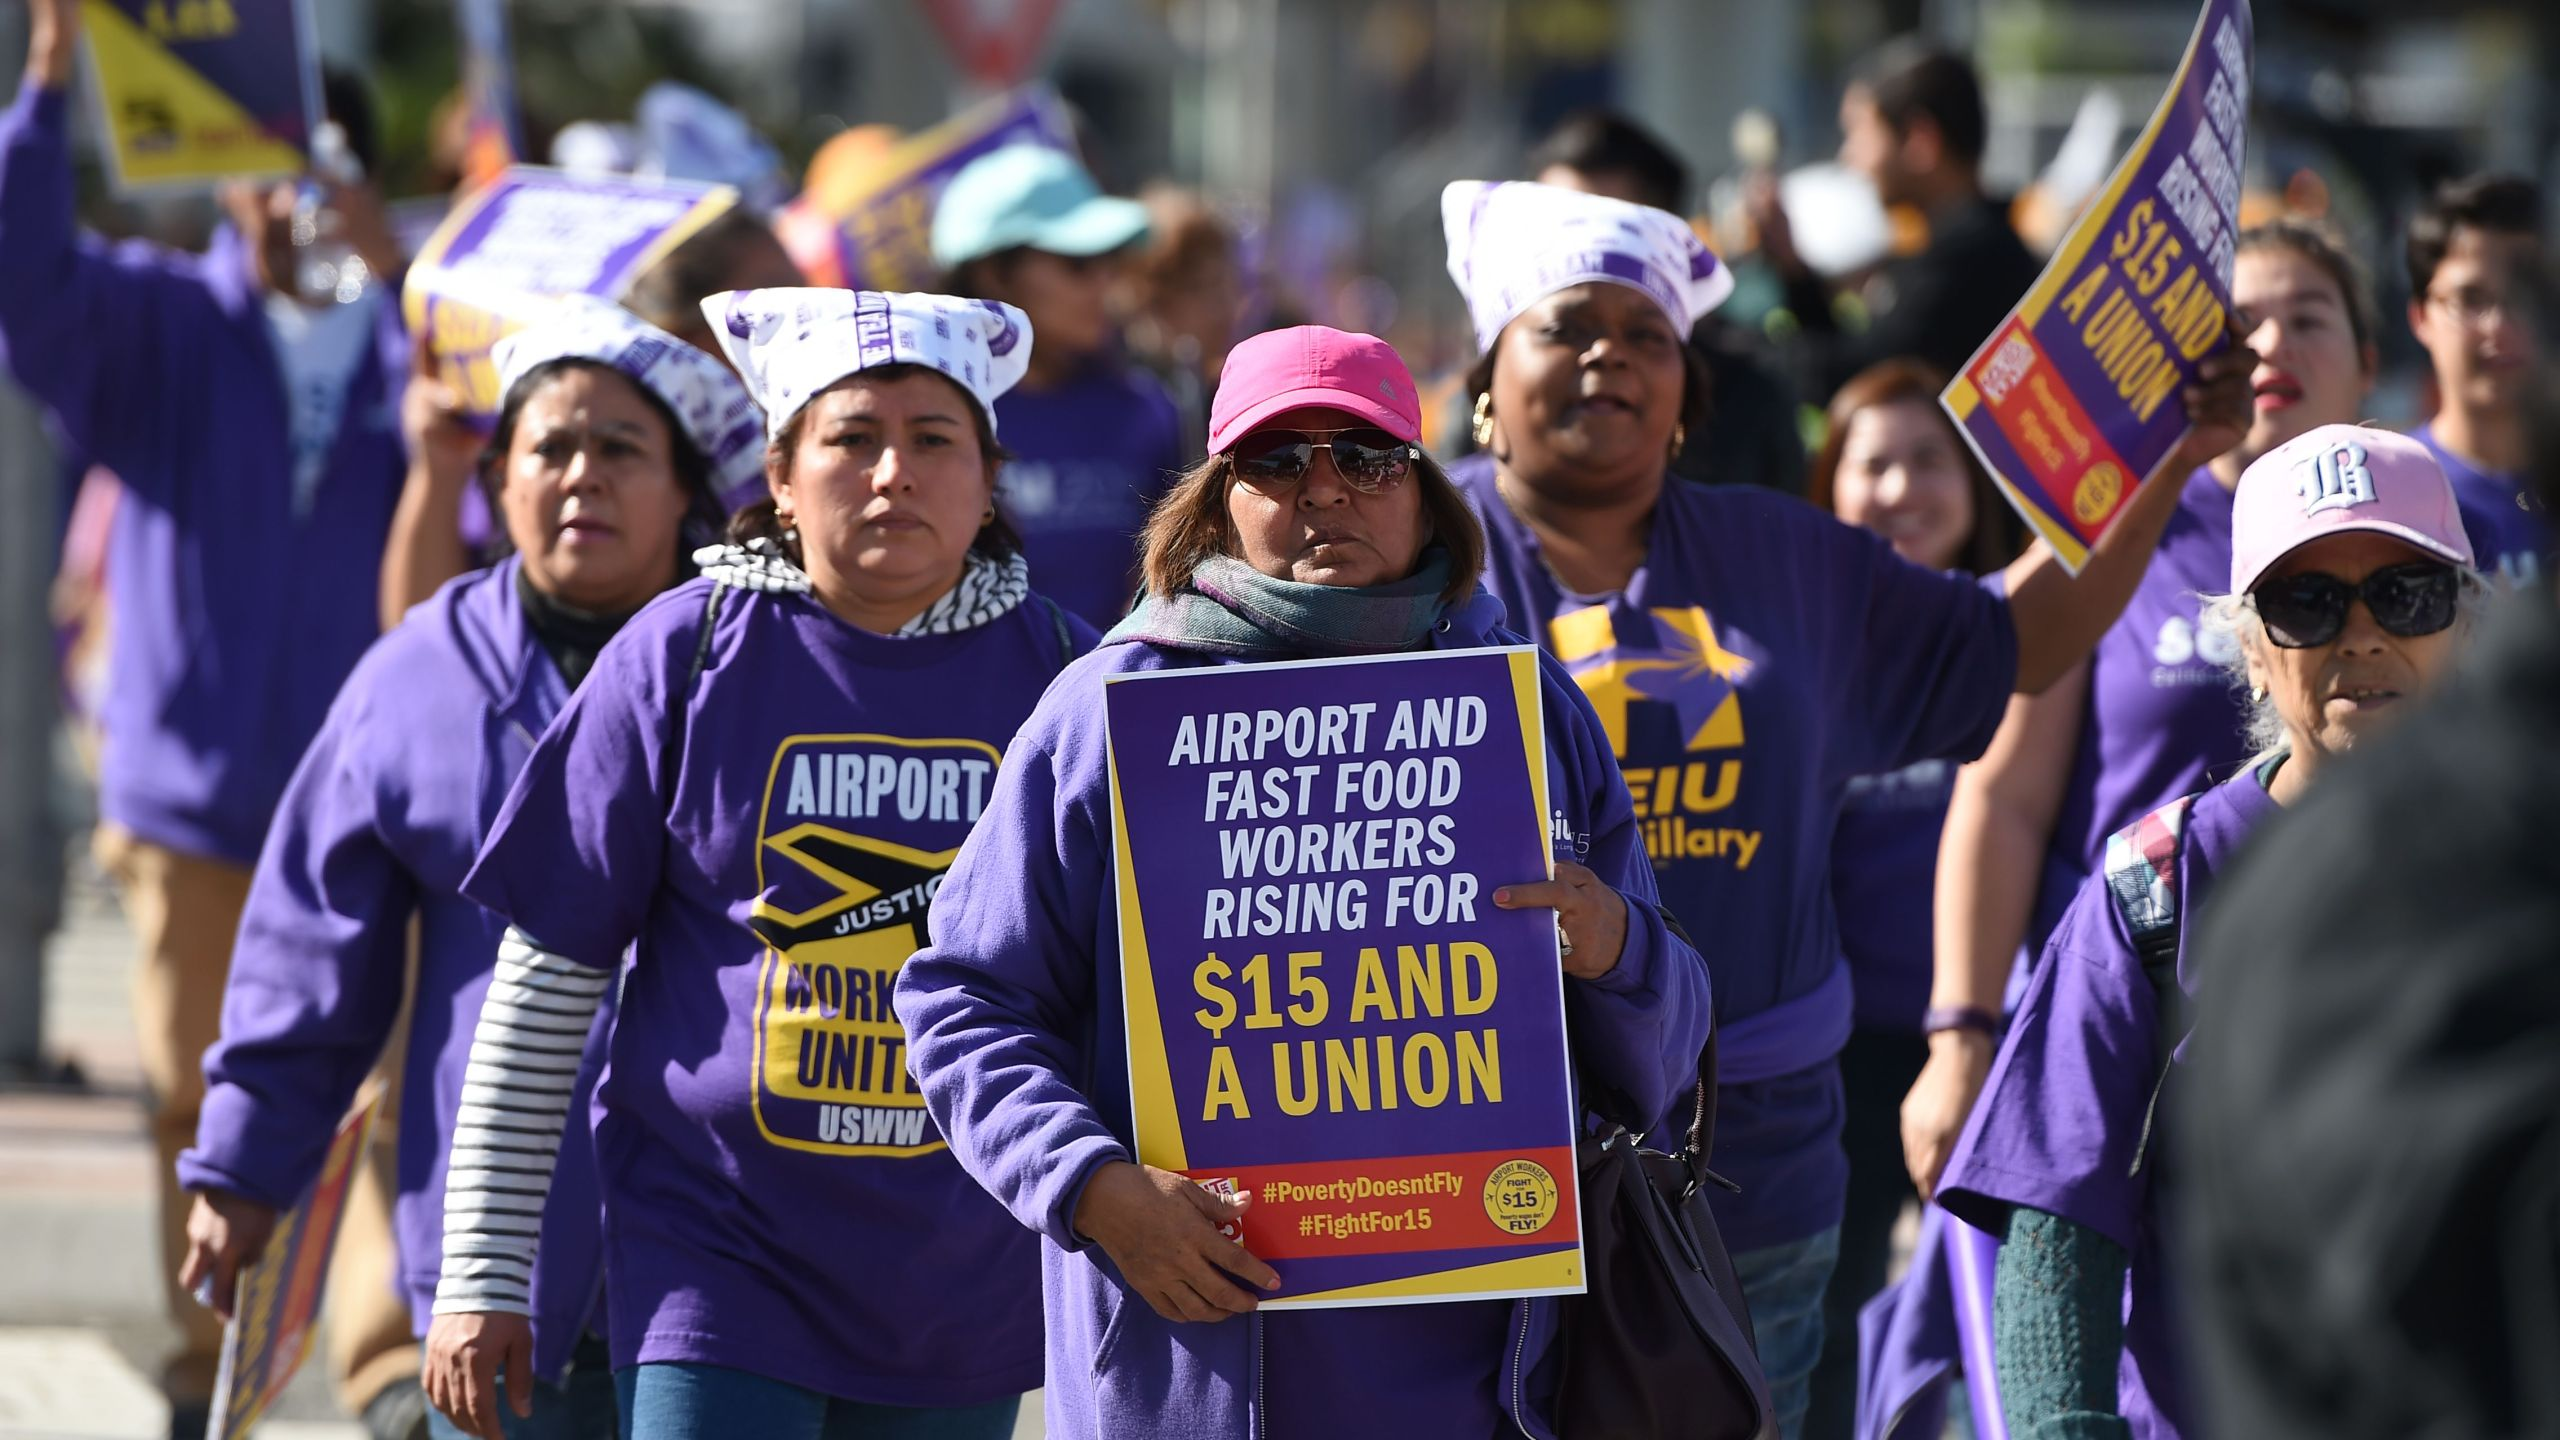 """Union workers and supporters participate in a """"Fight for $15"""" wage protest at Los Angeles International Airport in Los Angeles, on Nov. 29, 2016. Workers from fast-food chains, airports and other service industries rallied in U.S. cities as part of a nationwide day of disruption to demand union rights and a minimum wage of $15 an hour. Workers joining in included cabin cleaners, luggage handlers and other staff at O'Hare, Los Angeles and Fort Lauderdale airports. However, flights were not expected to be disrupted. (Robyn Beck /AFP via Getty Images)"""